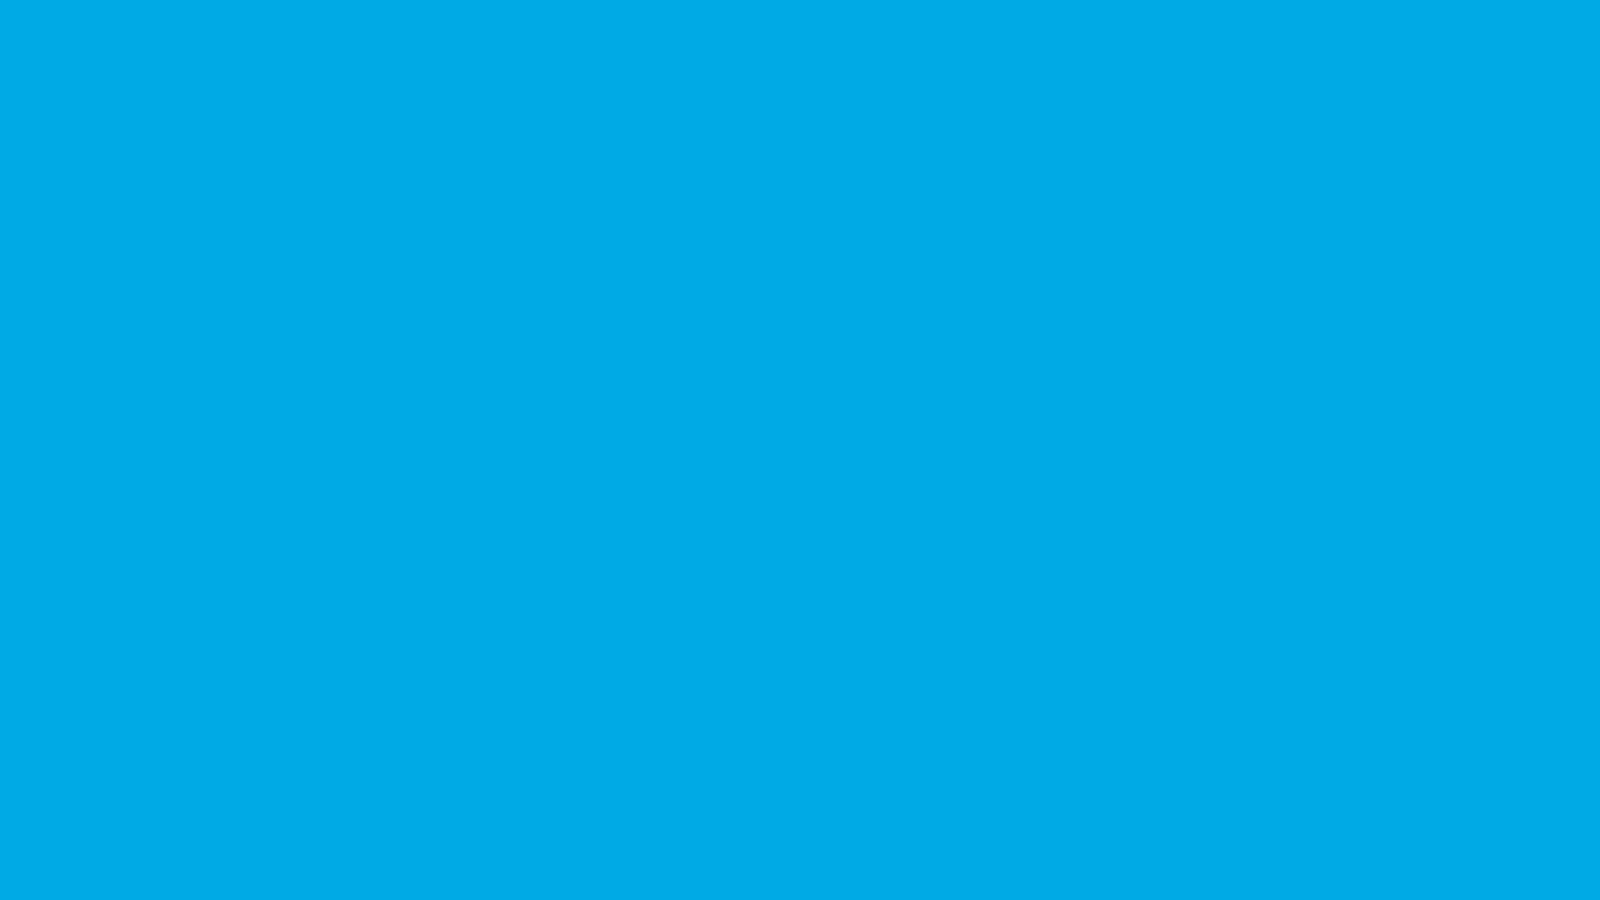 1600x900 Spanish Sky Blue Solid Color Background